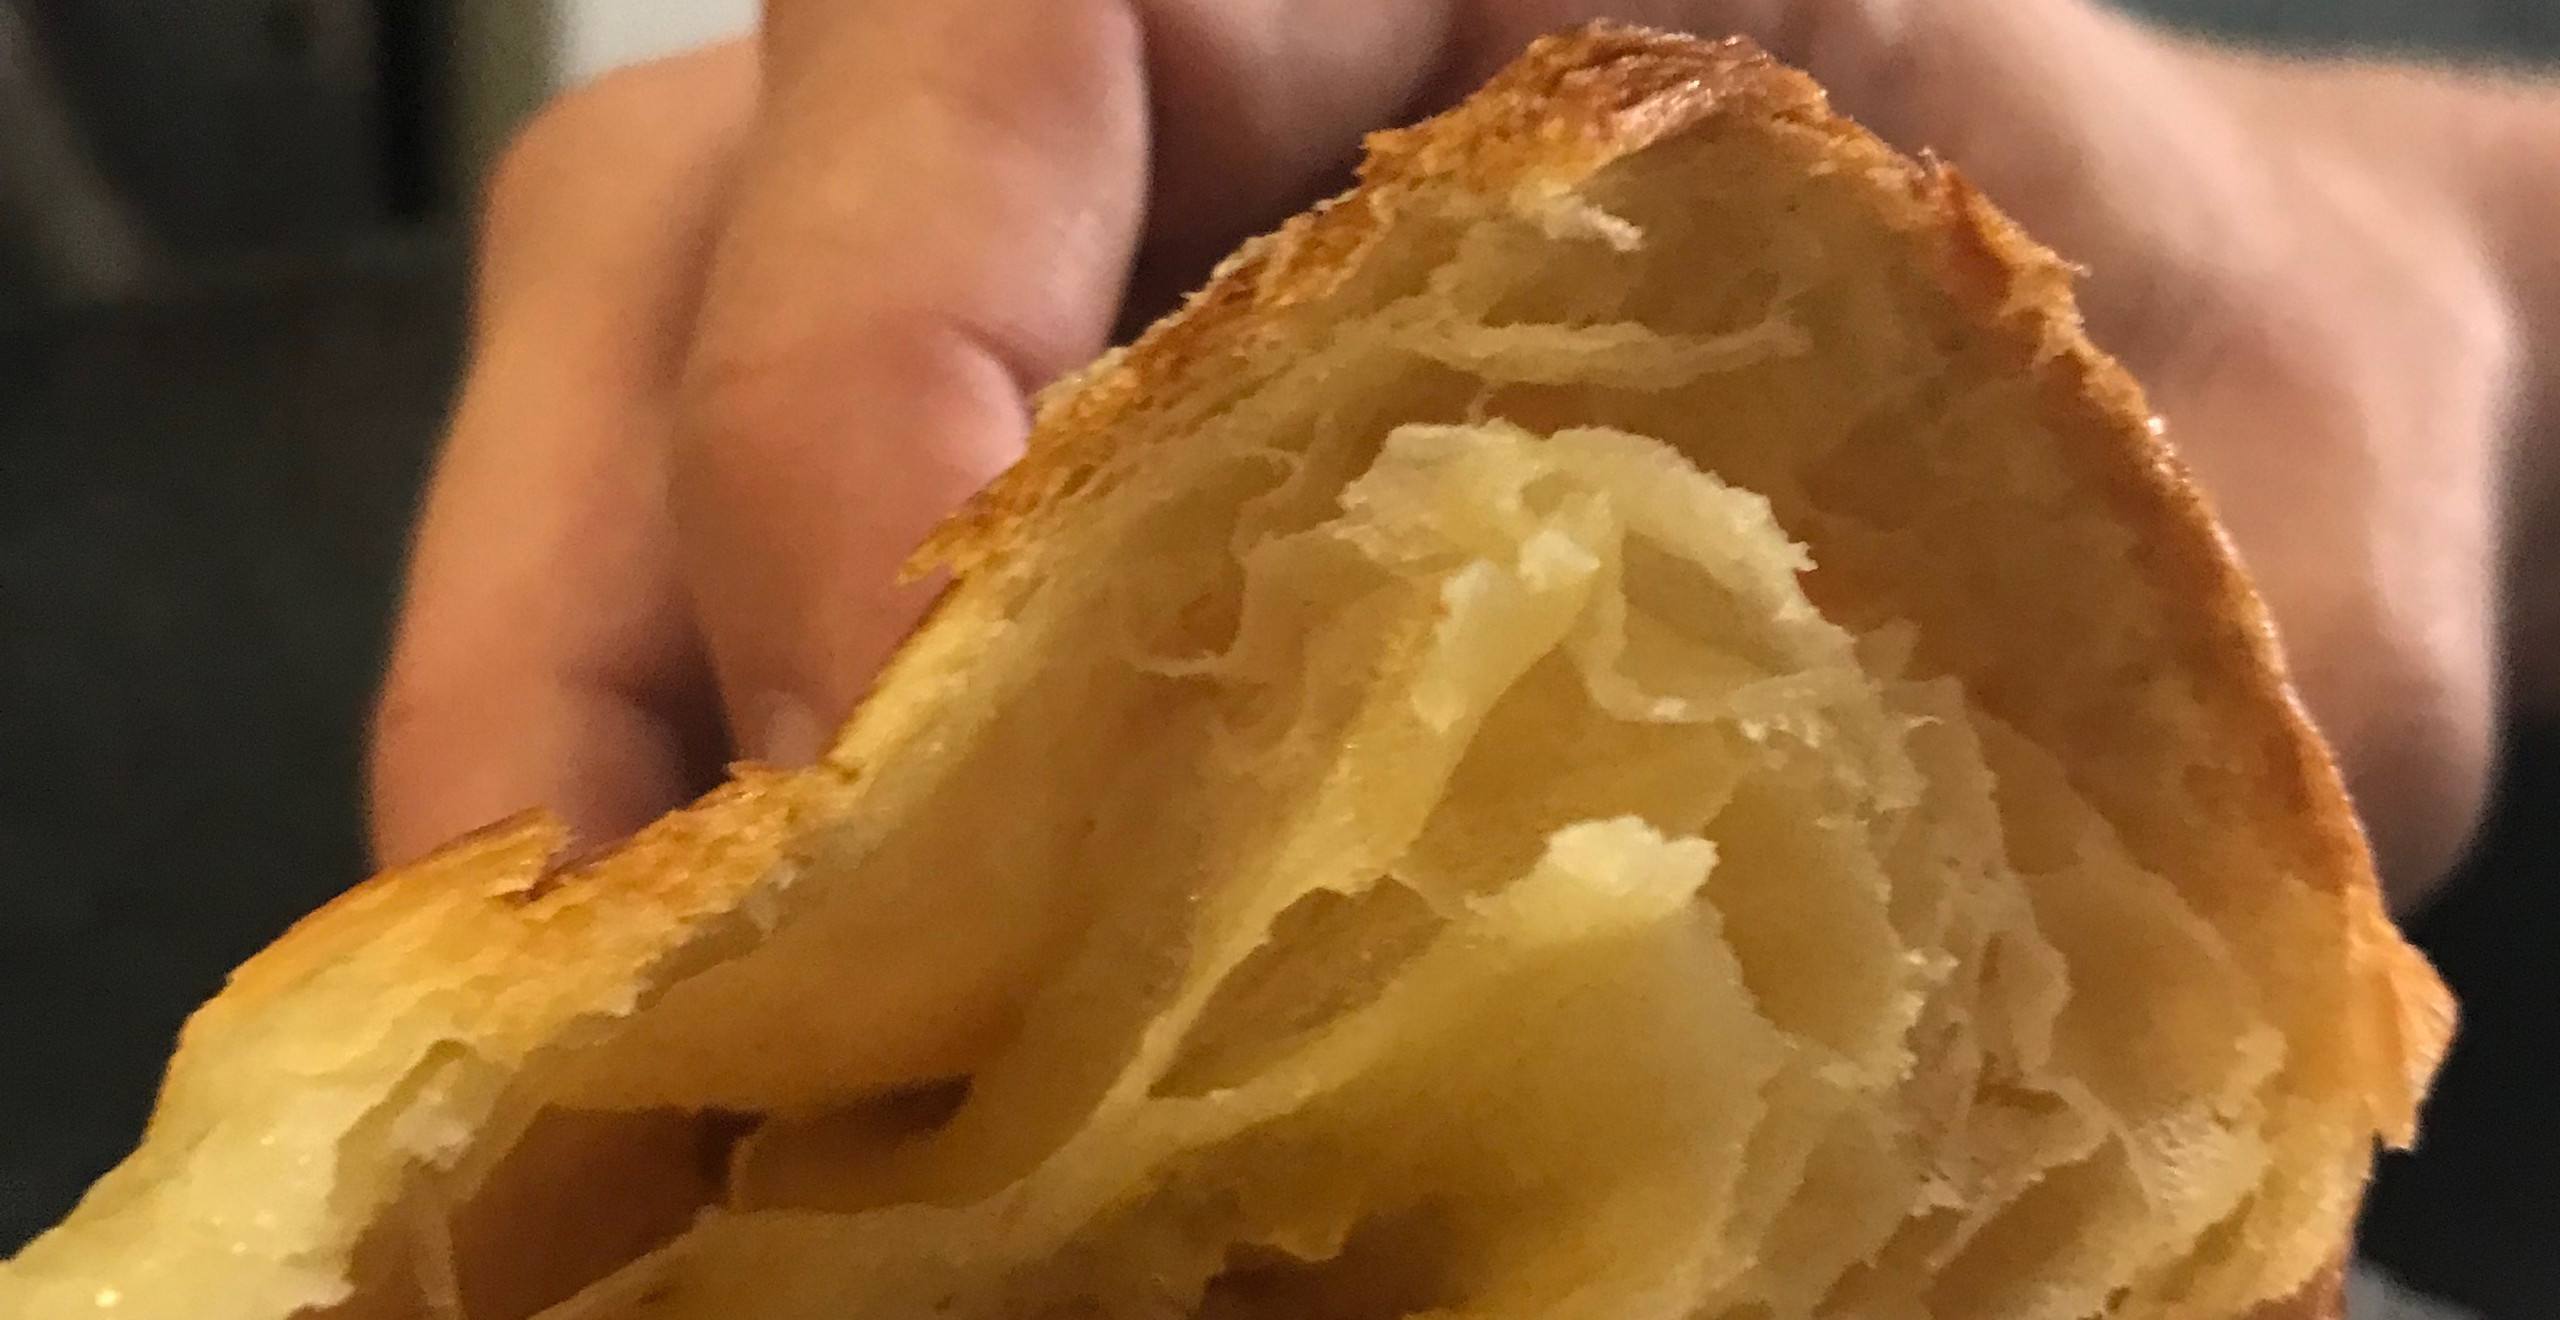 Incredible croissant. Say that five times fast.